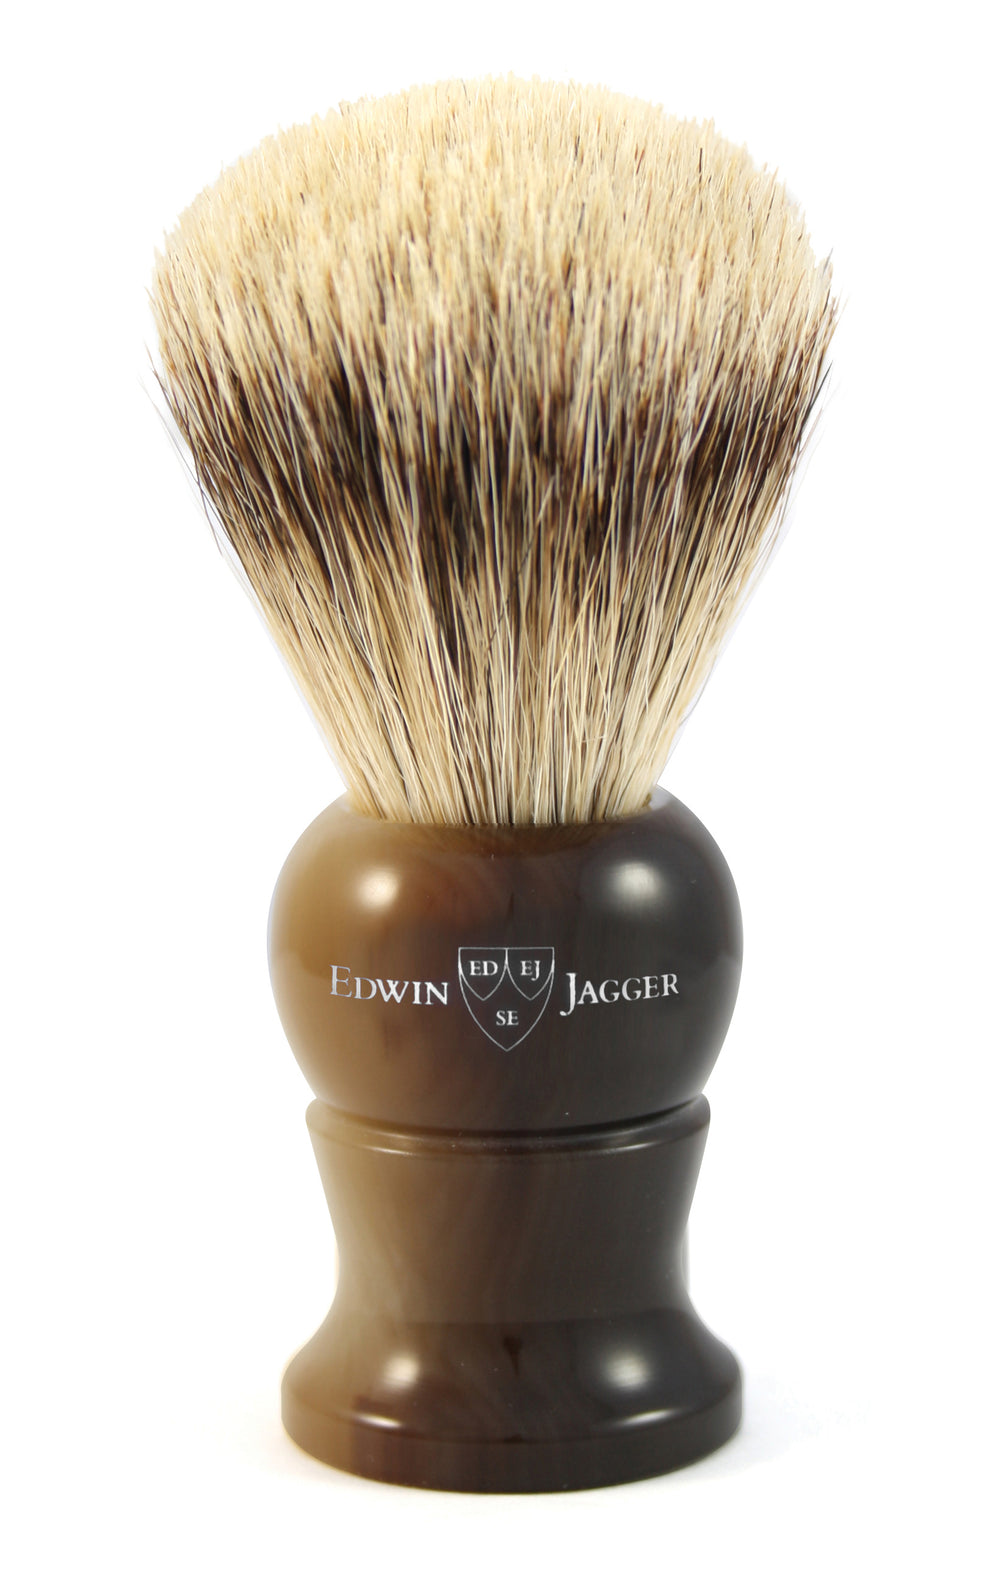 Edwin Jagger Imitation Horn Shaving Brush (Synthetic Silver Tip)